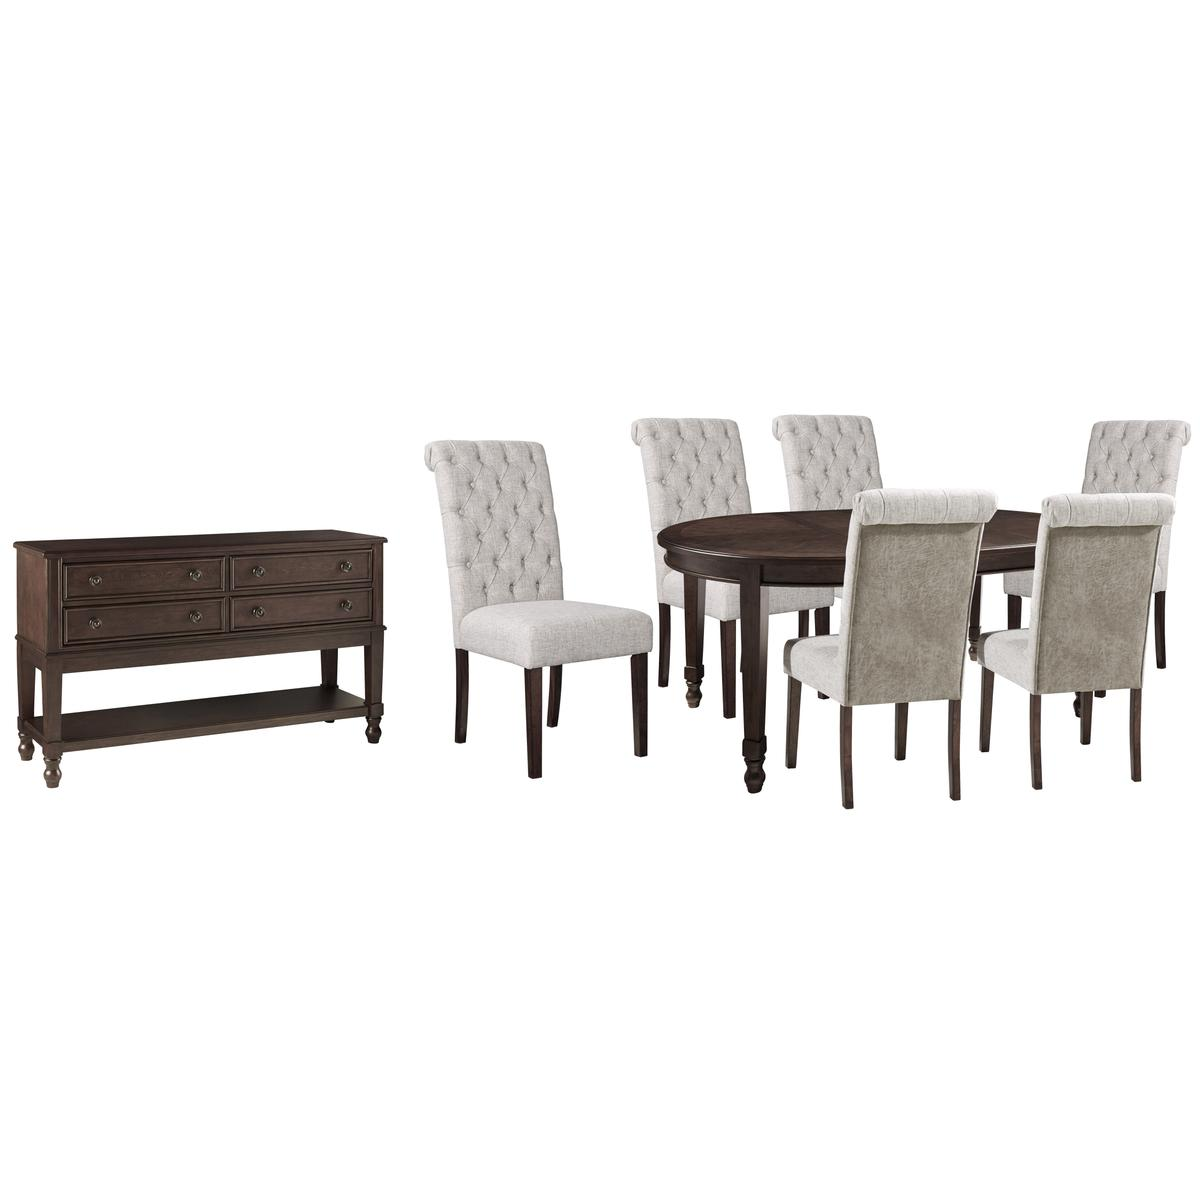 Dining Table and 6 Chairs With Storage